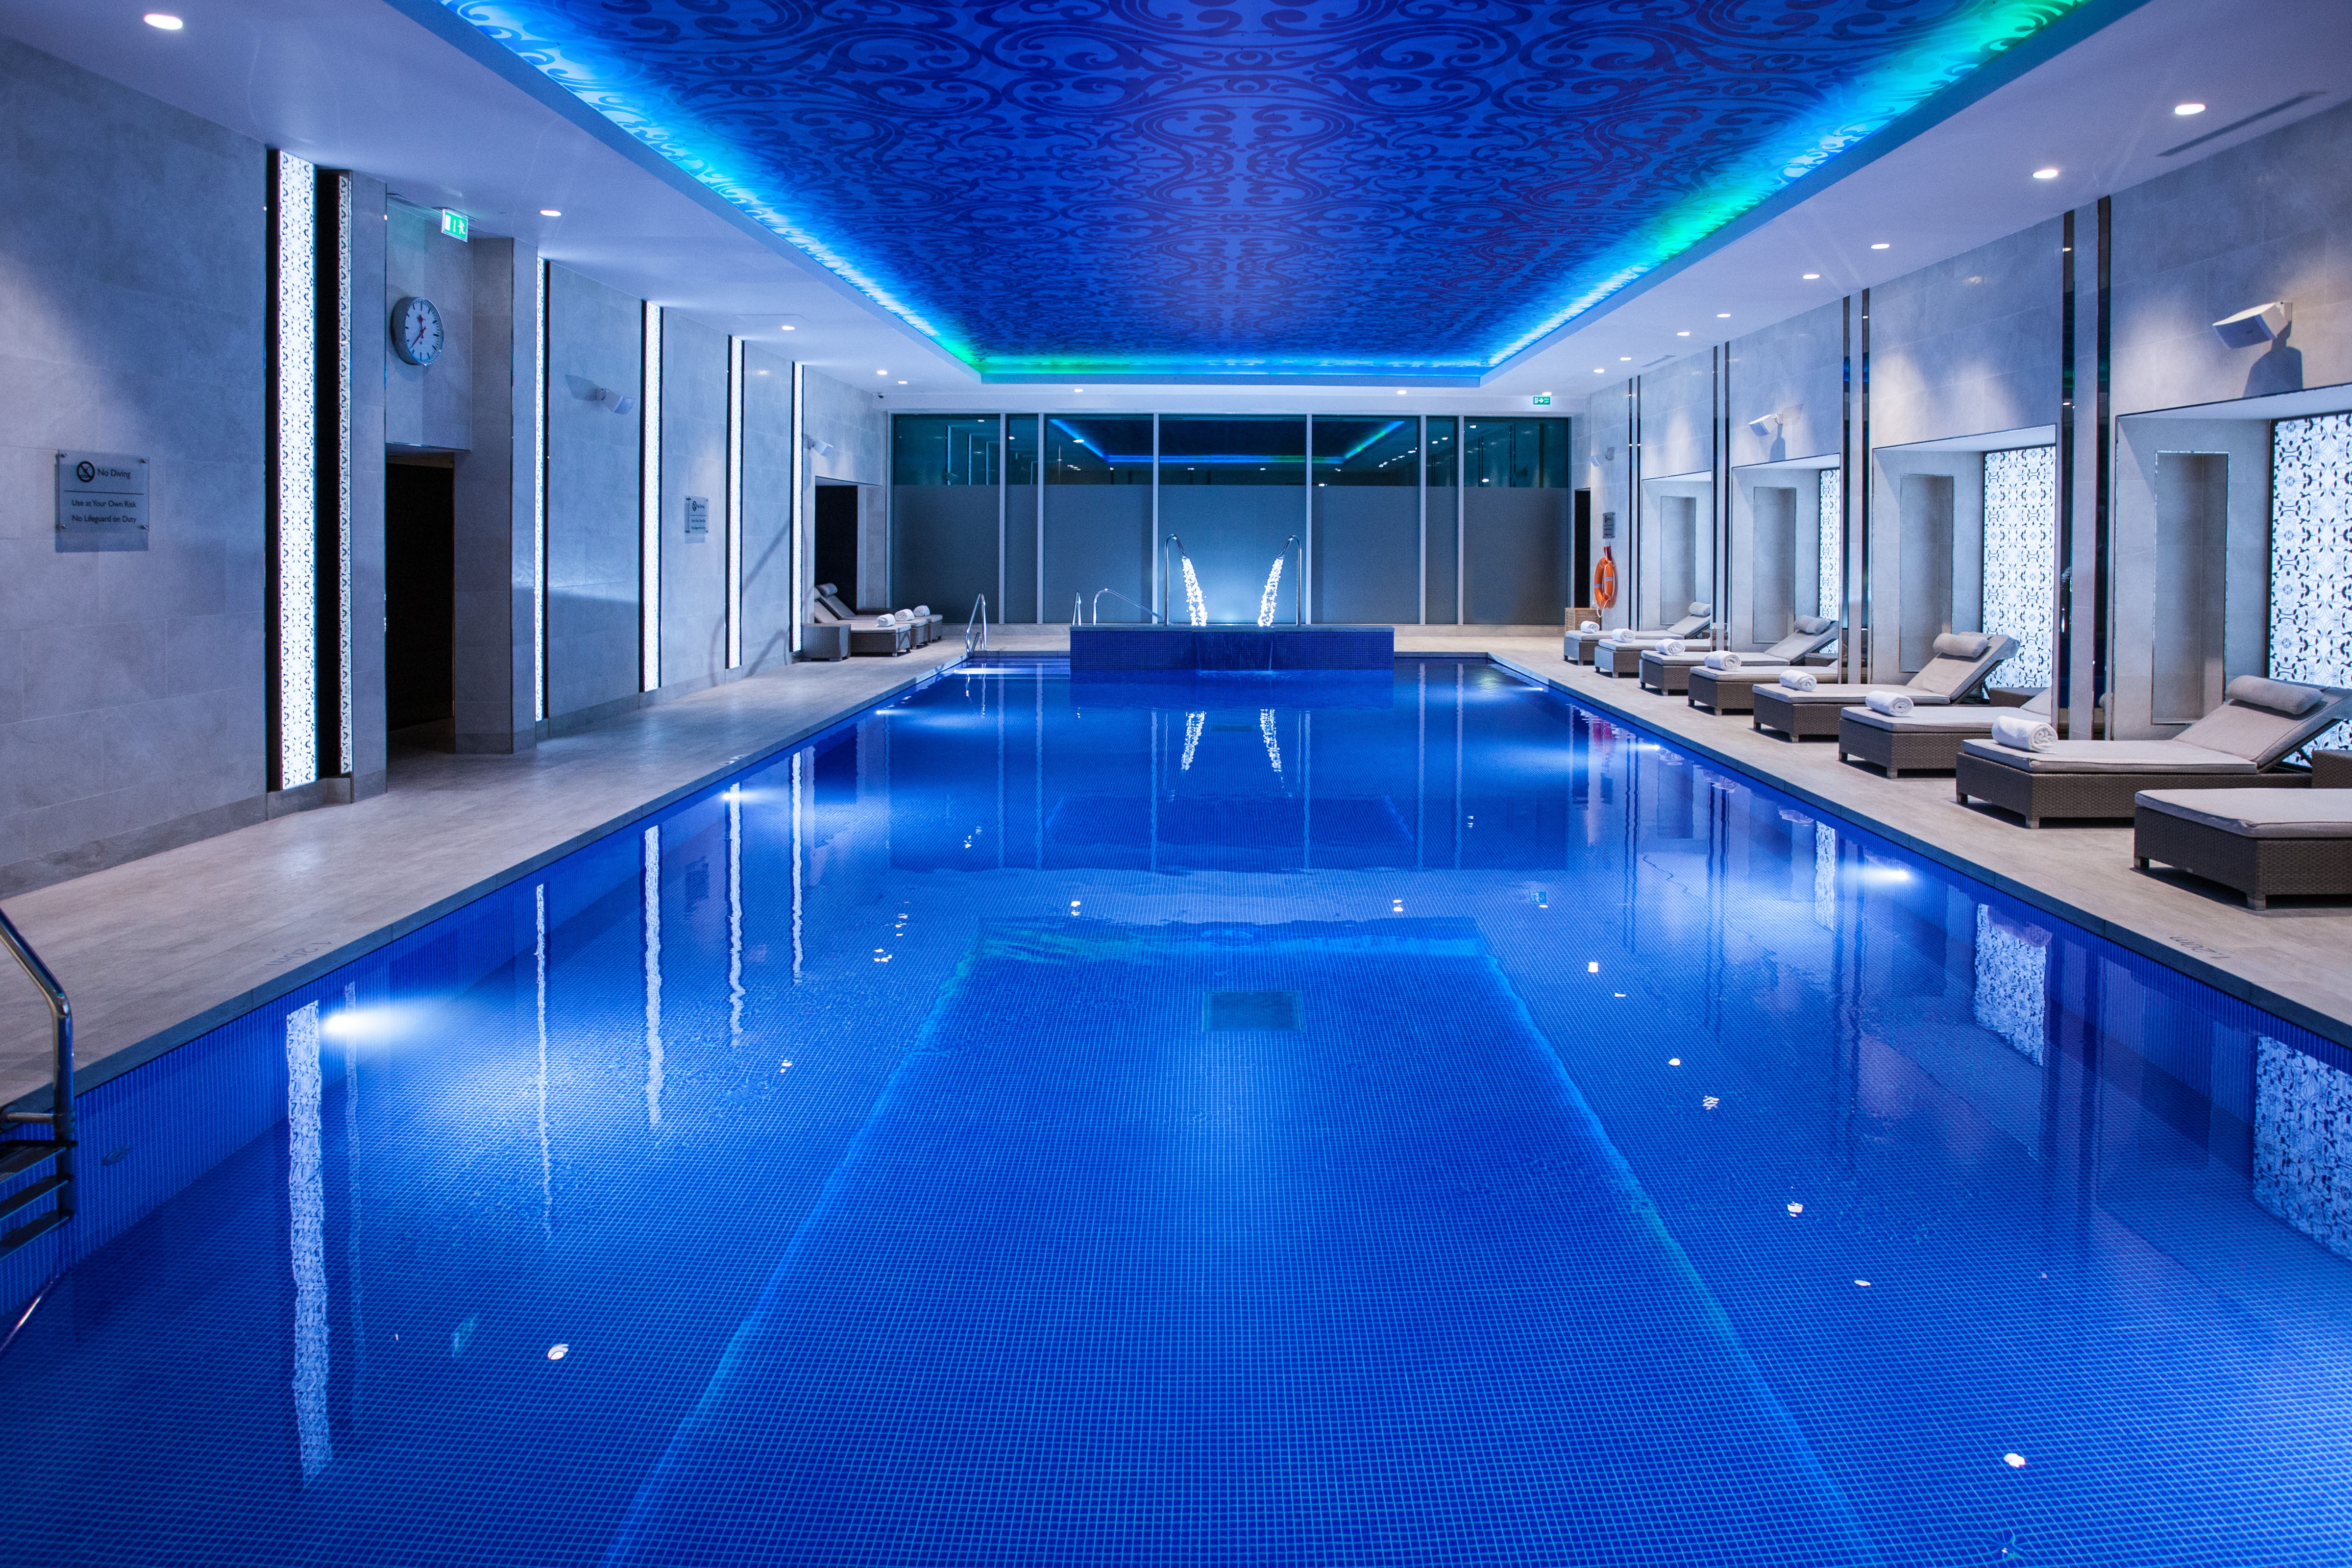 Bumper awards night swimming pool design and installation news lspc for Late night swimming pools london